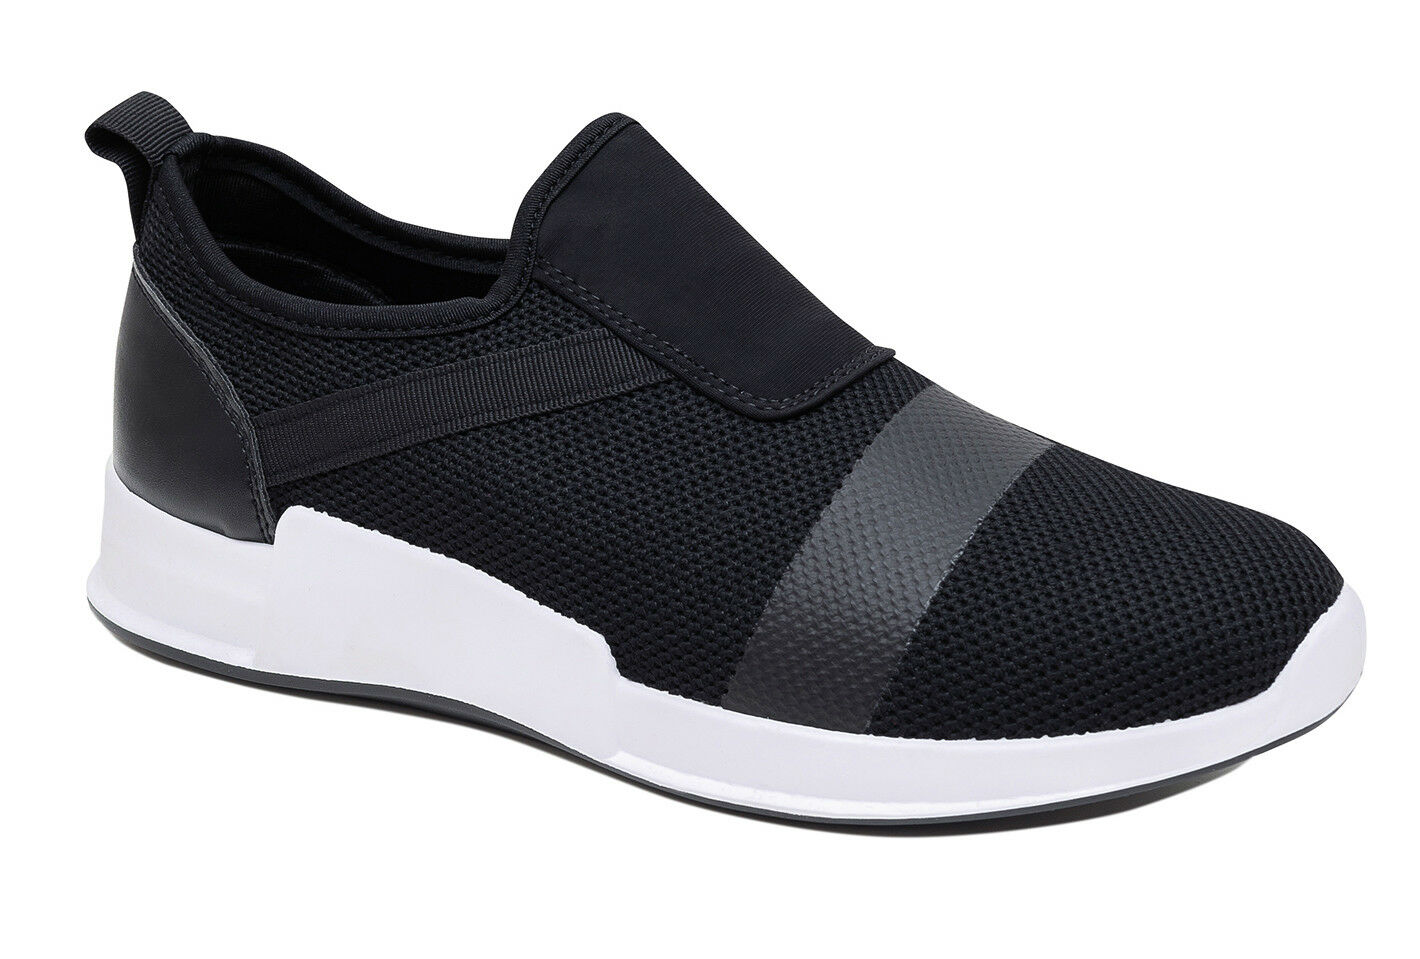 MANTURNSCHUHE DIAMANT SCHUHE SLIP ON FITNESS GYMNASTIK SPORT CASUAL black